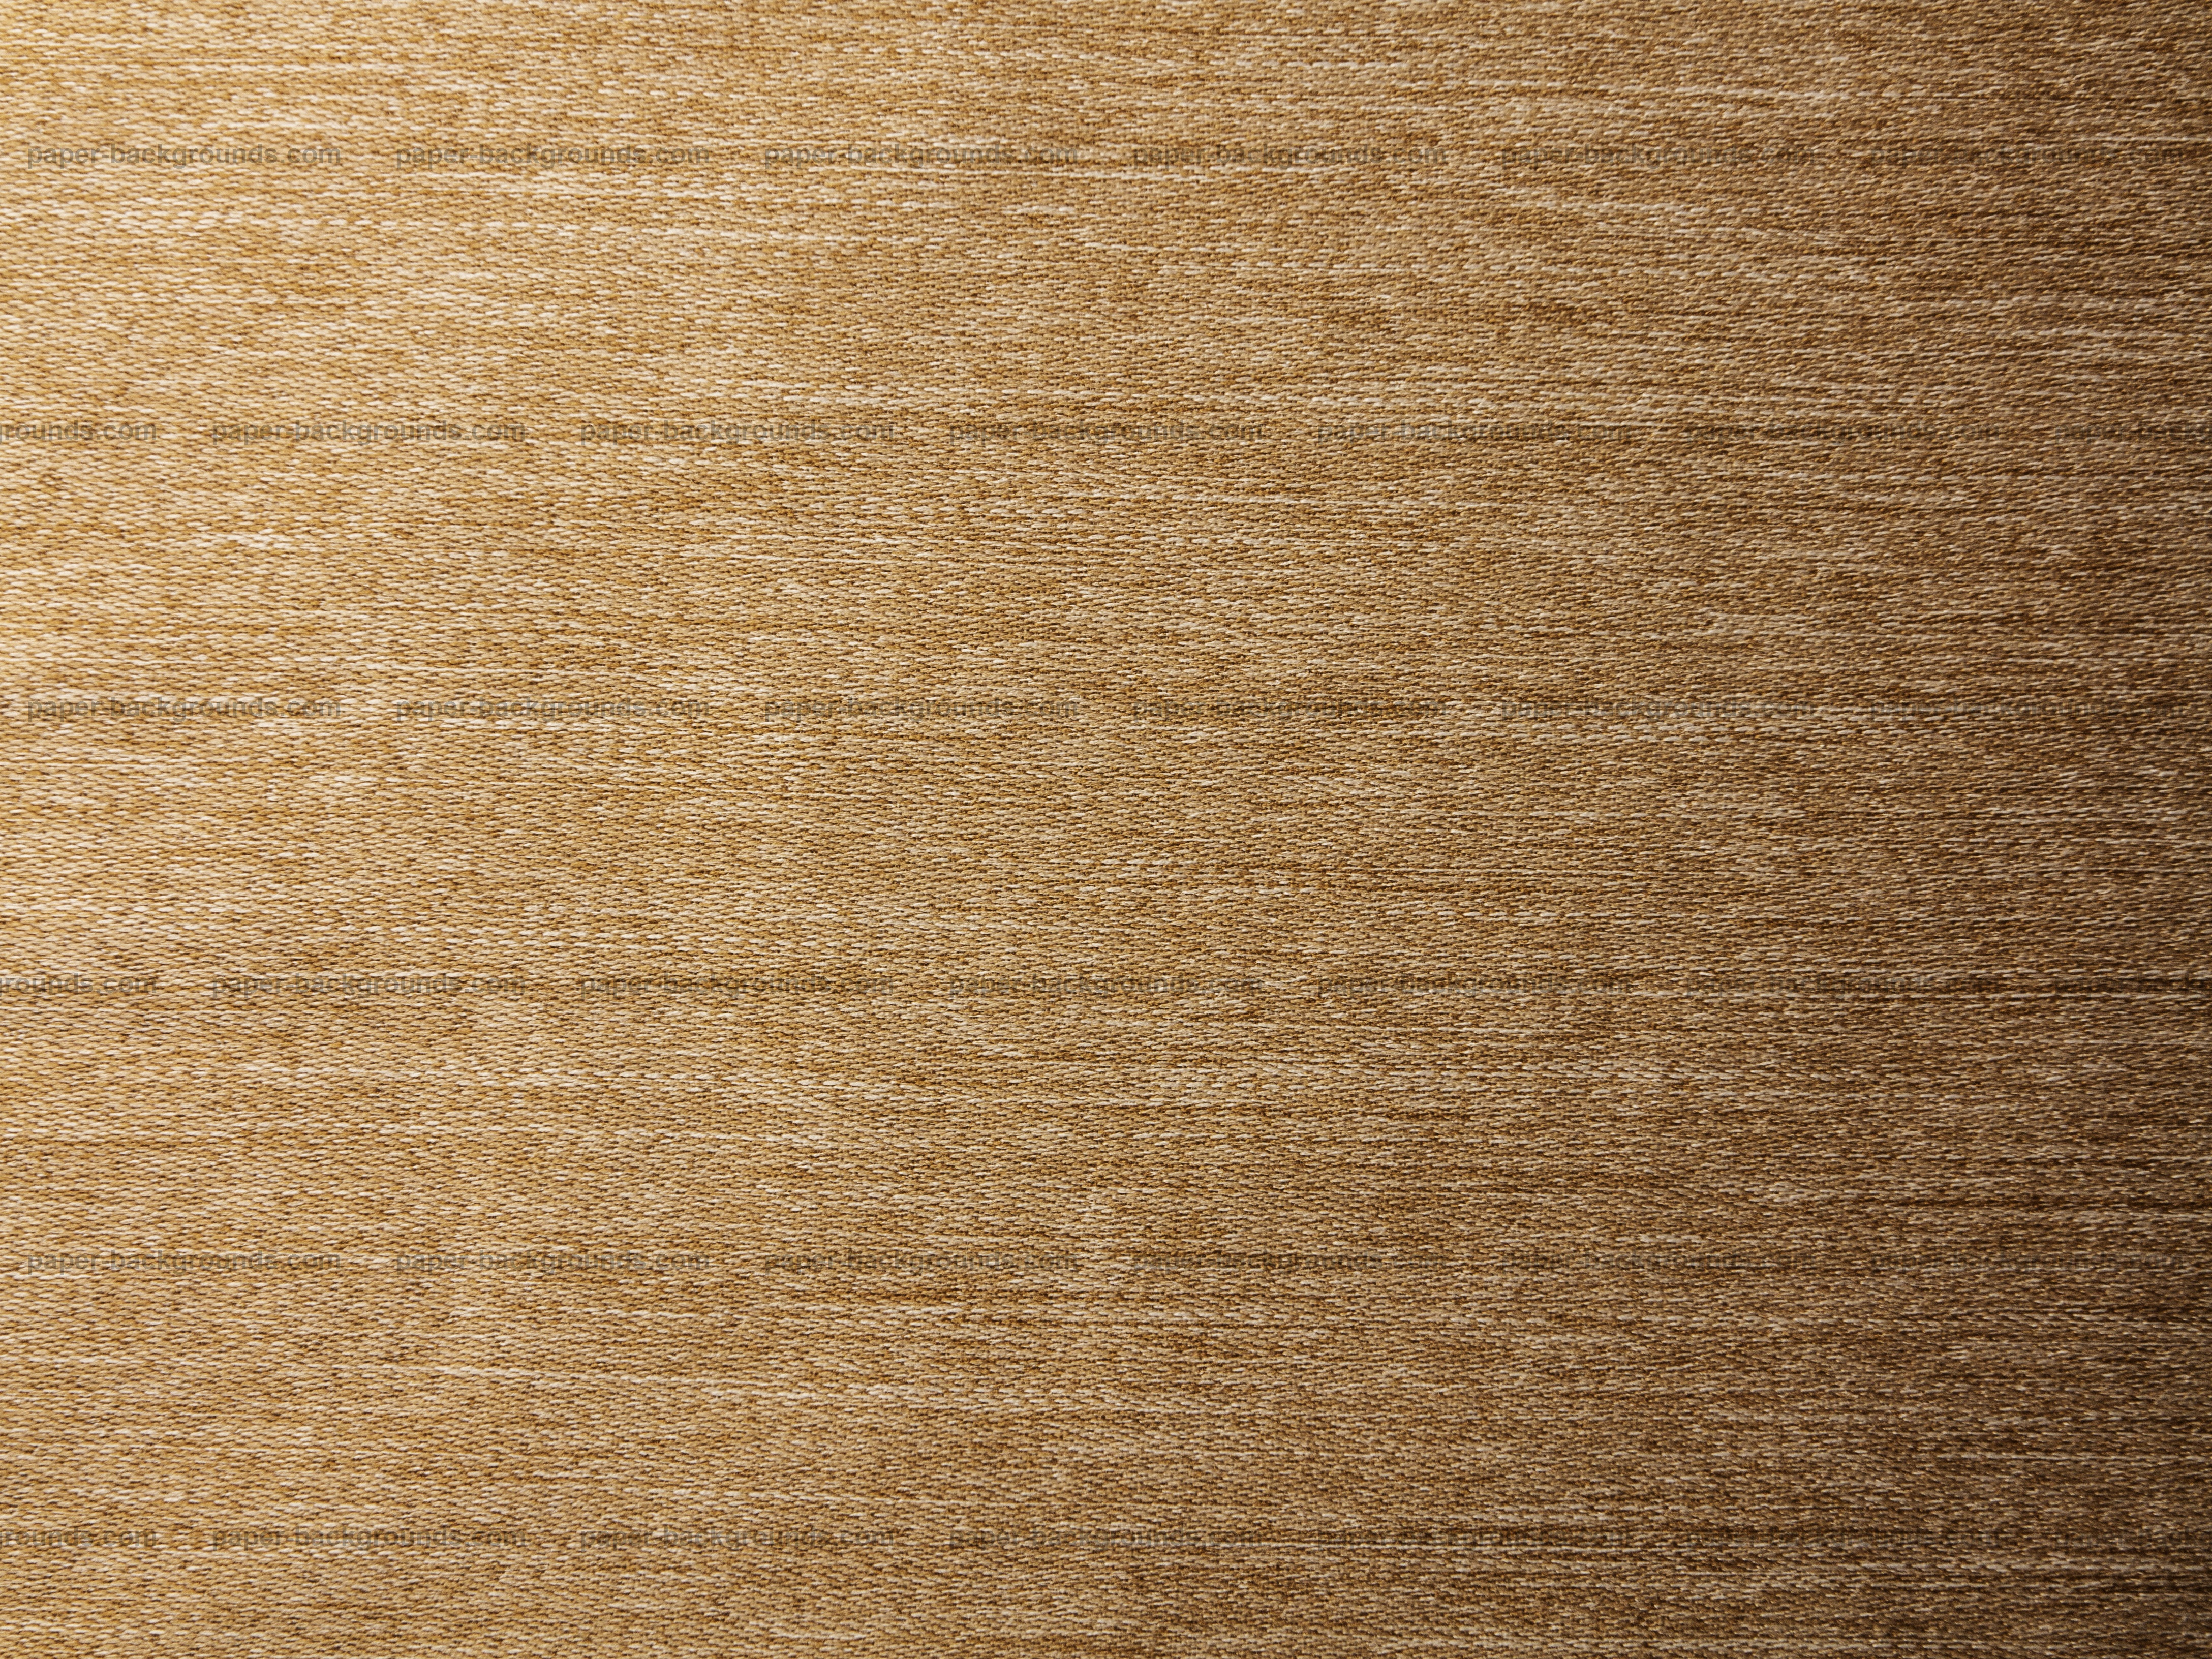 Free photo Fabric Background Brown Close up Fabric